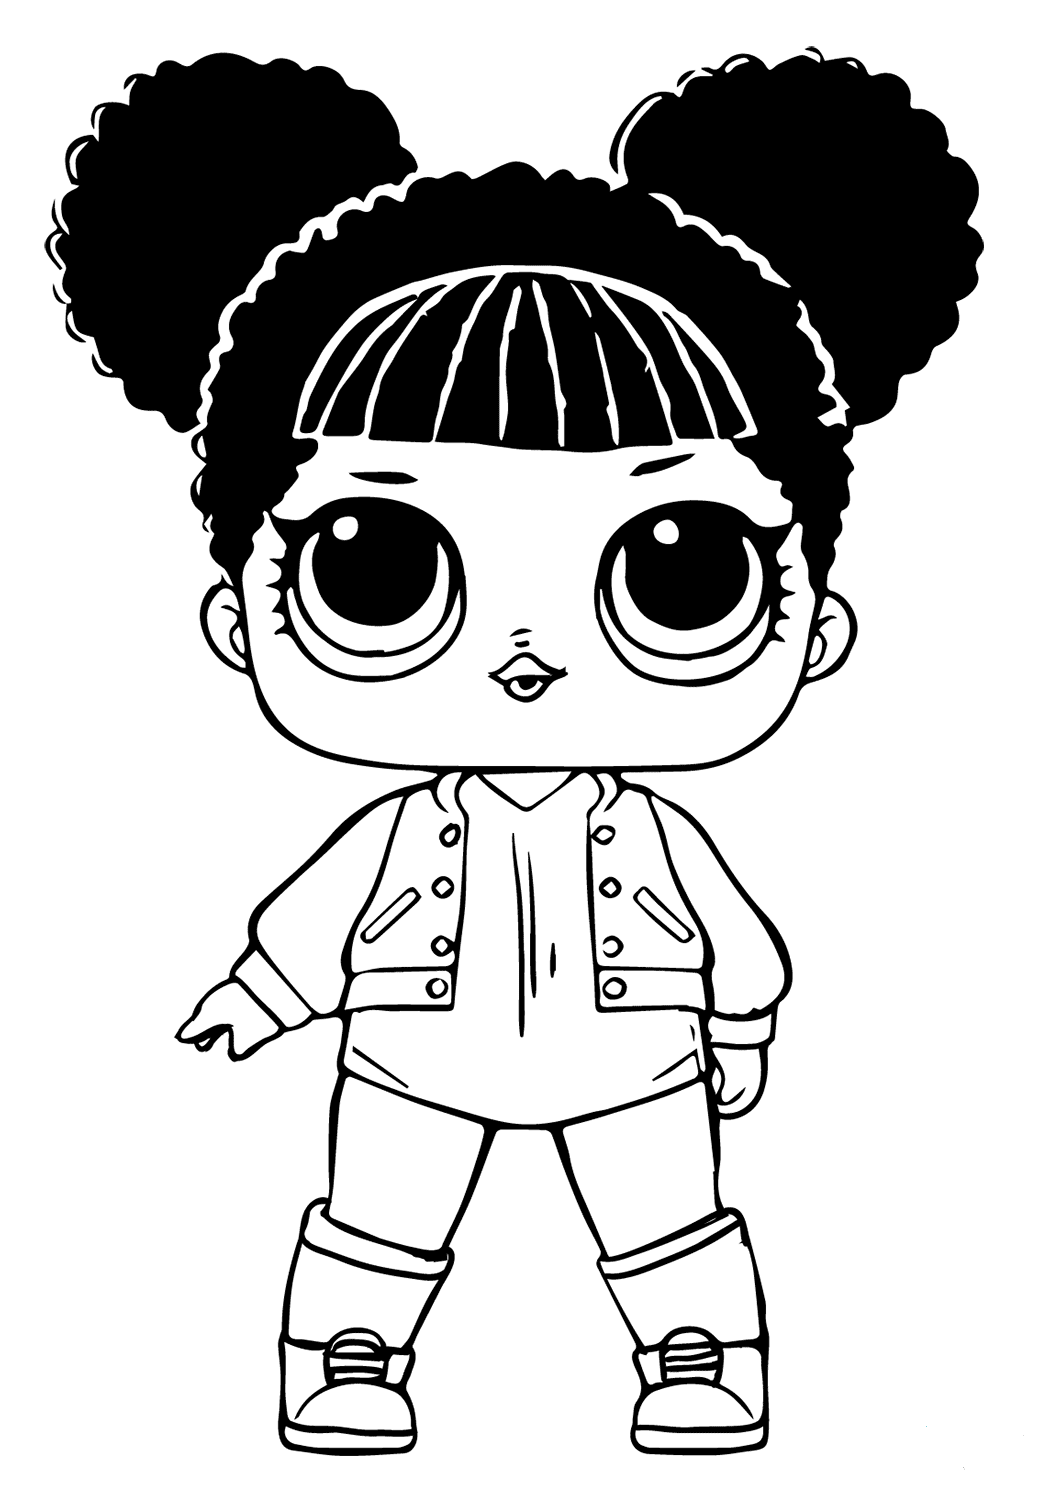 doll coloring sheets dolls coloring pages sheets coloring doll